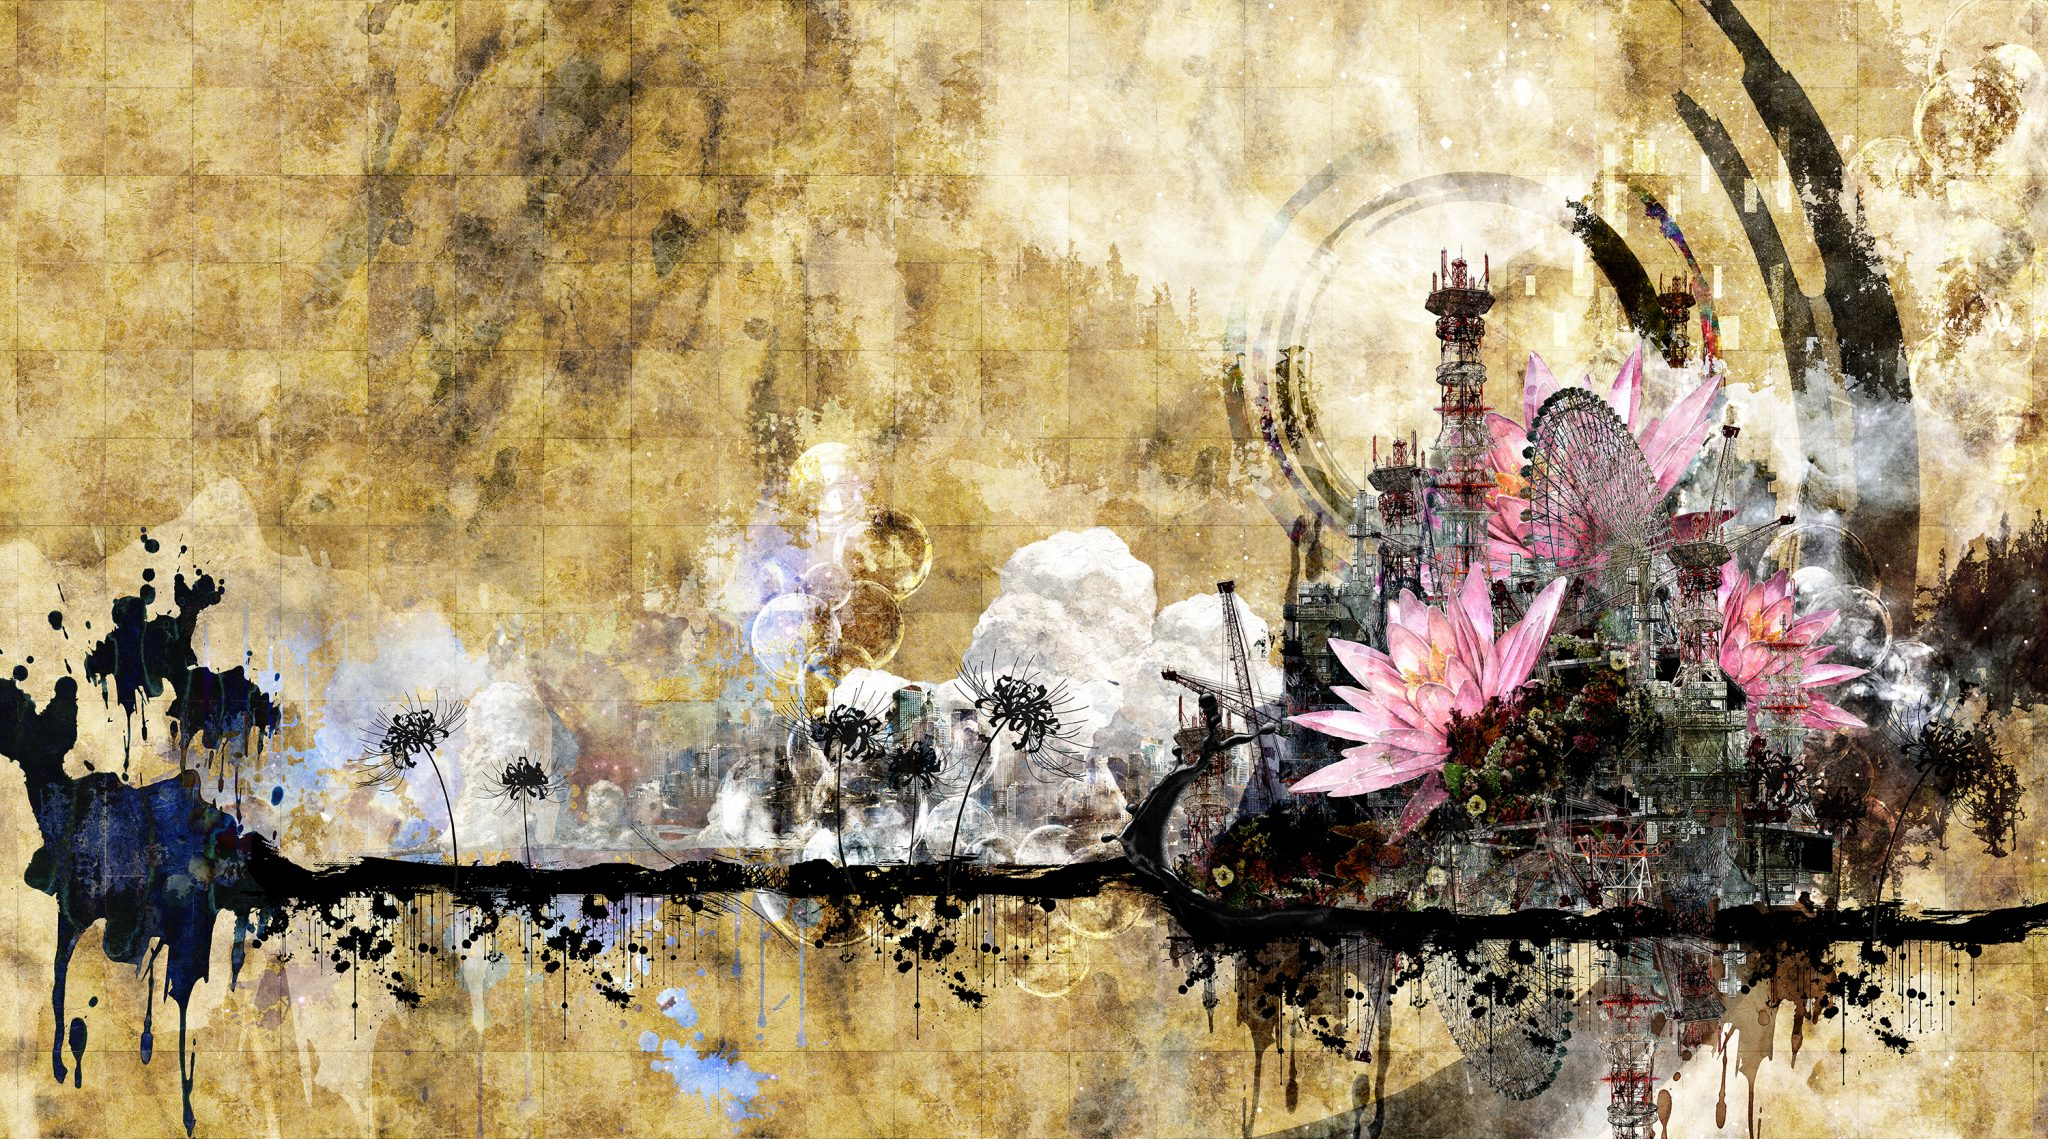 The art of Yuta Ikehara will be on display at the Manggha Museum of Japanese Art and Technology